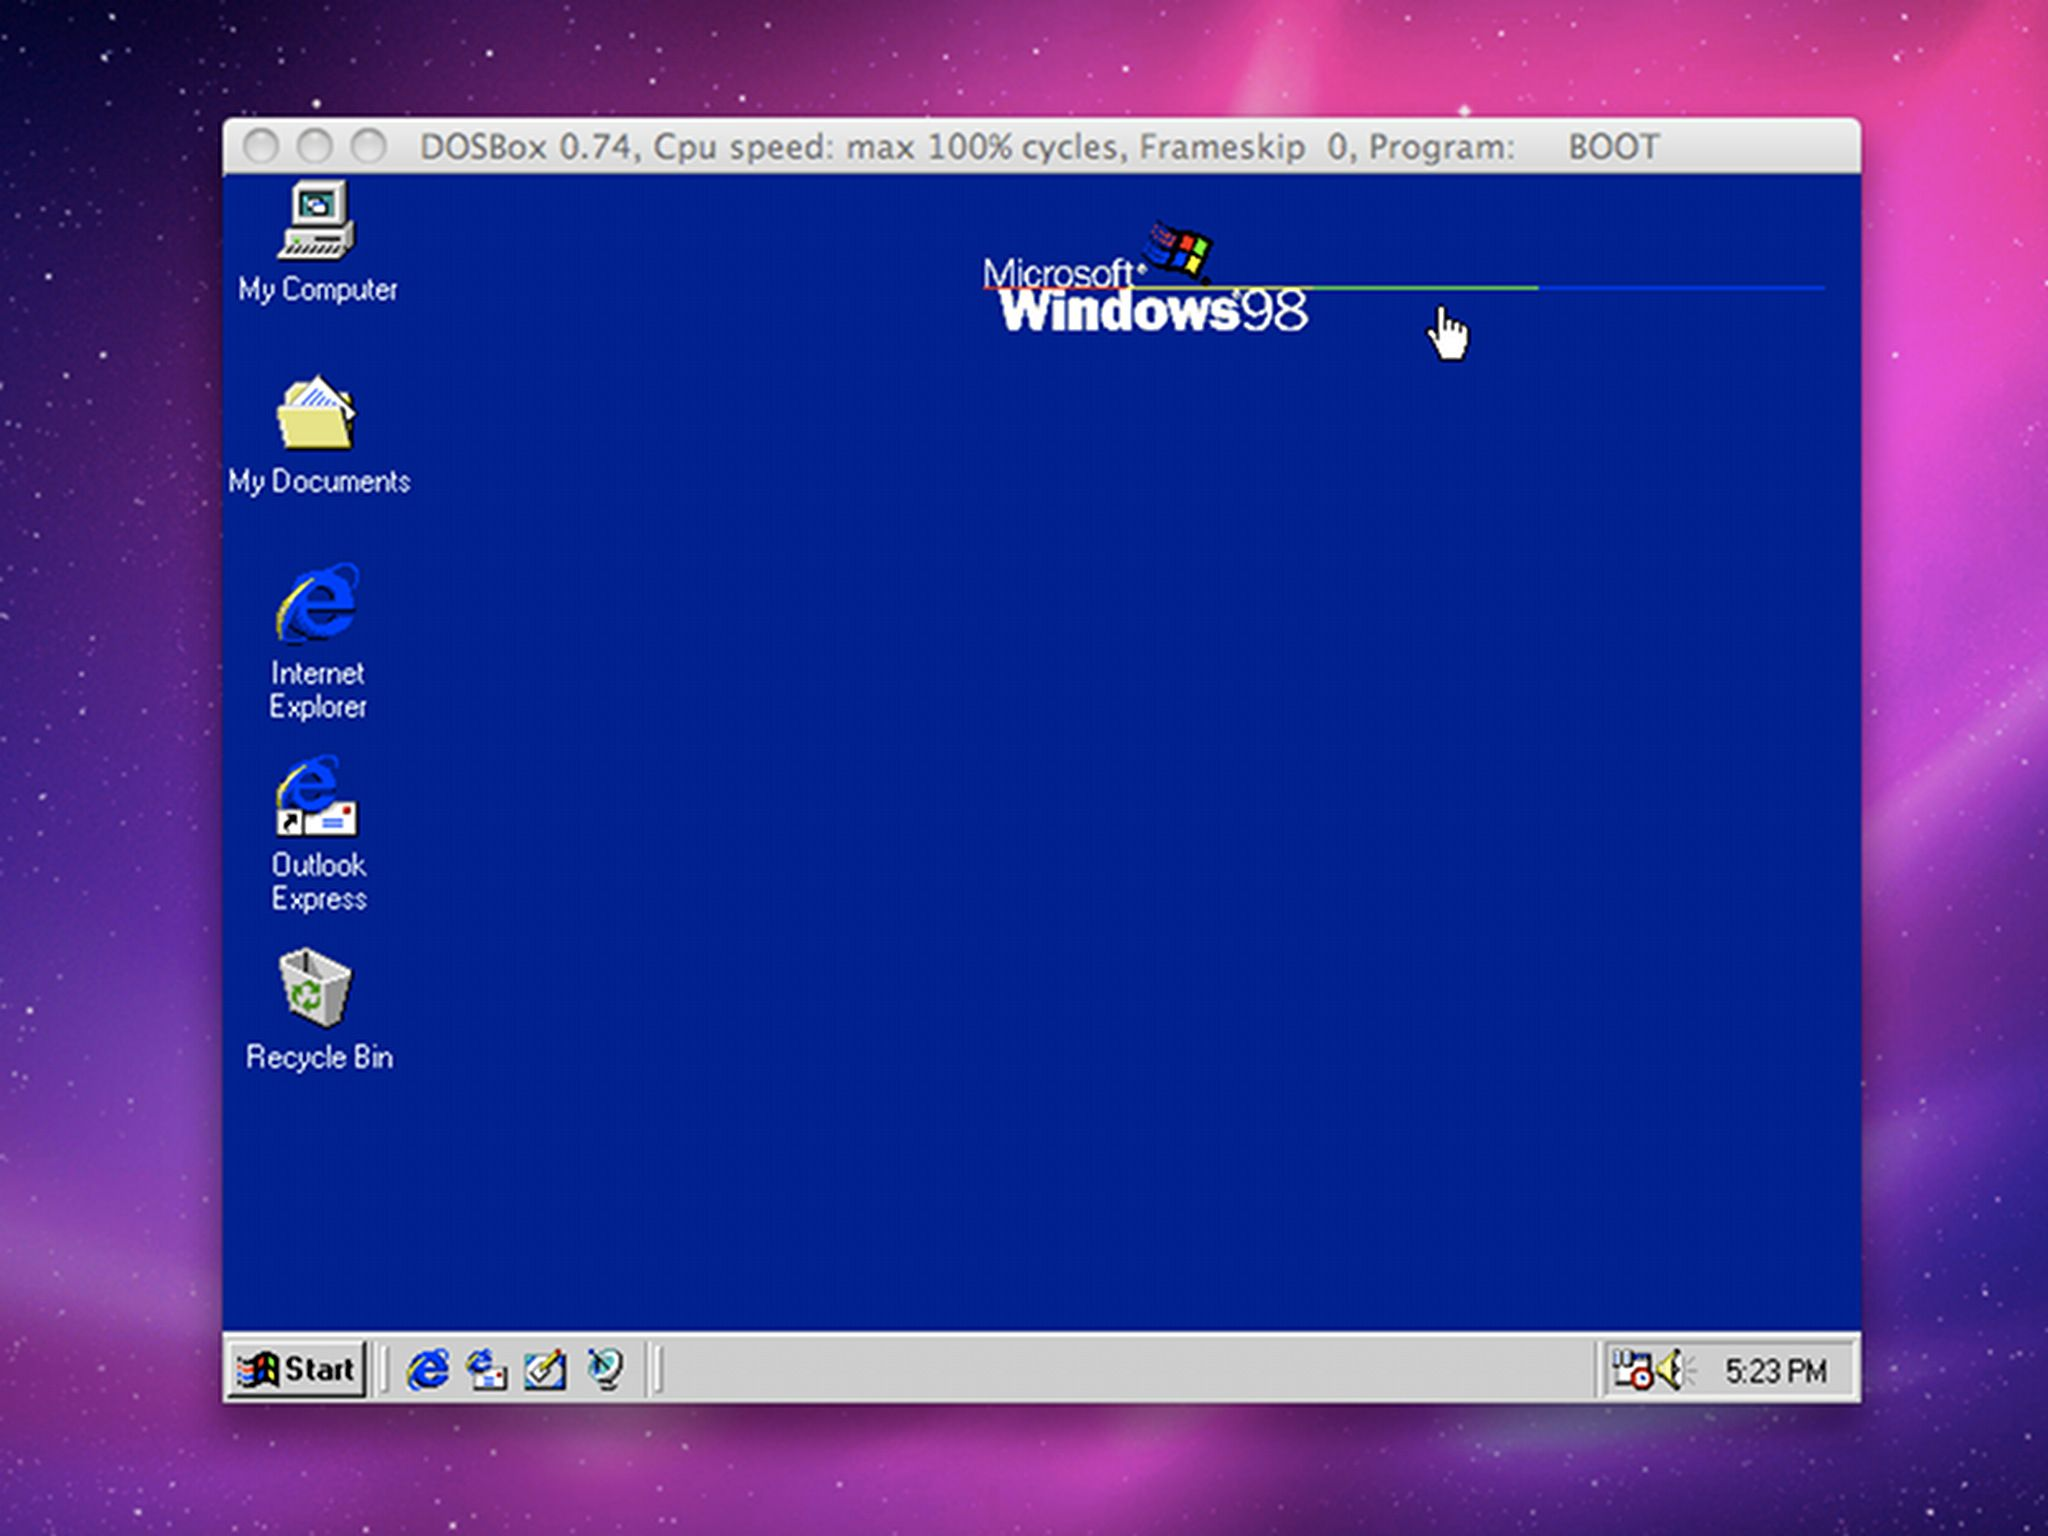 Win 98 in Dos Box on Mac OS X Snow Leopard! Woo Hoo! #DosBox